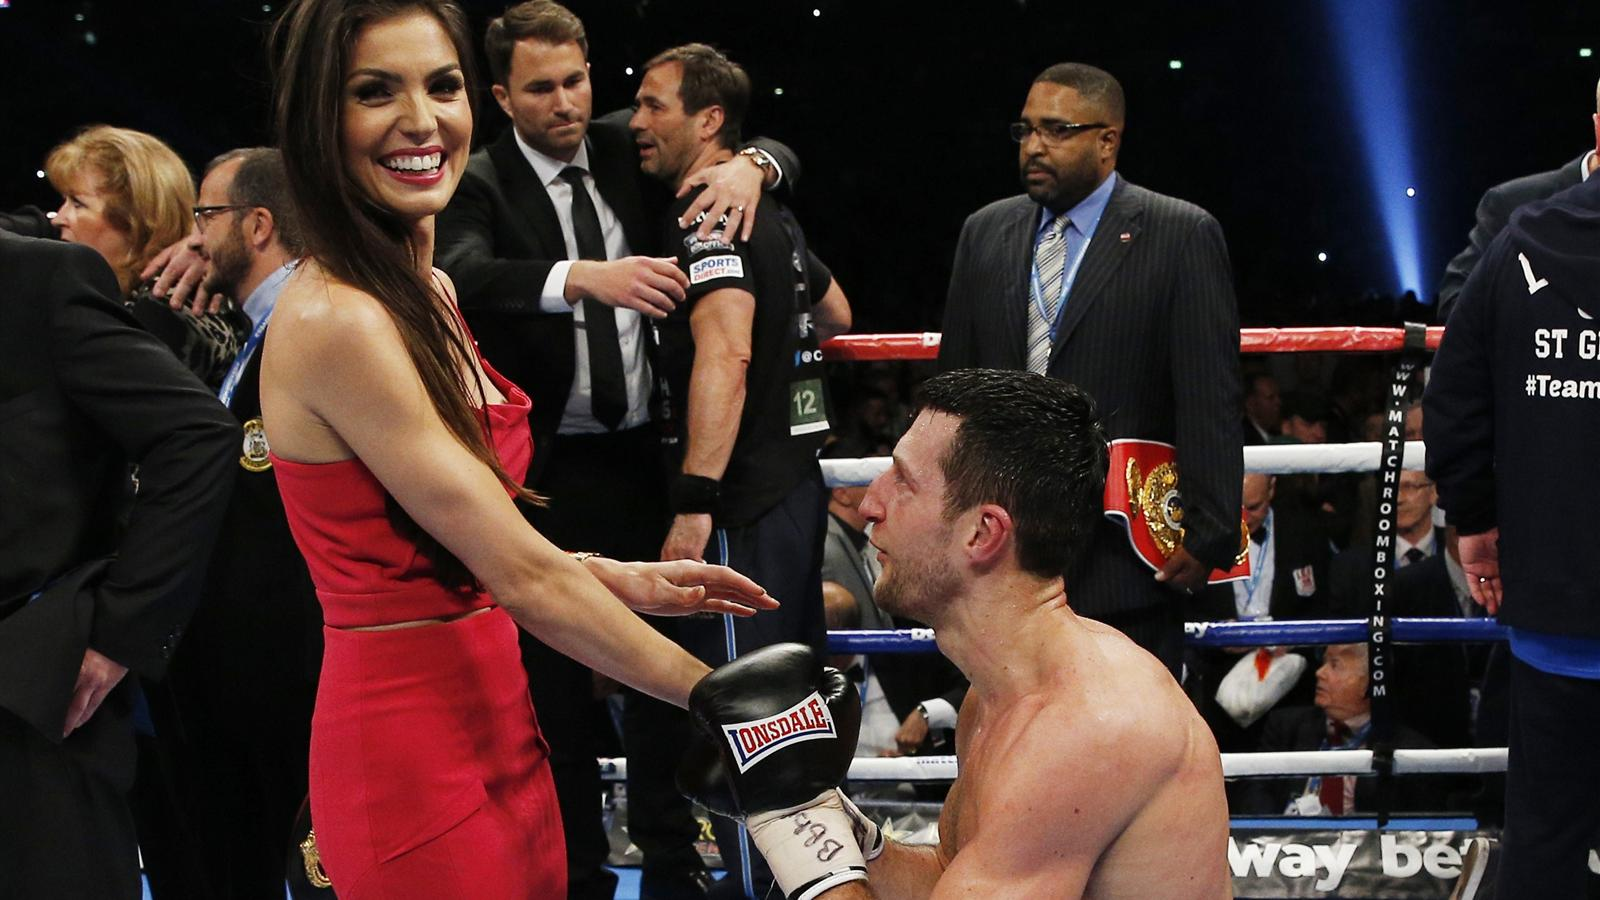 CARL FROCH WEDDING OFFER EVLİLİK TEKLİFİ